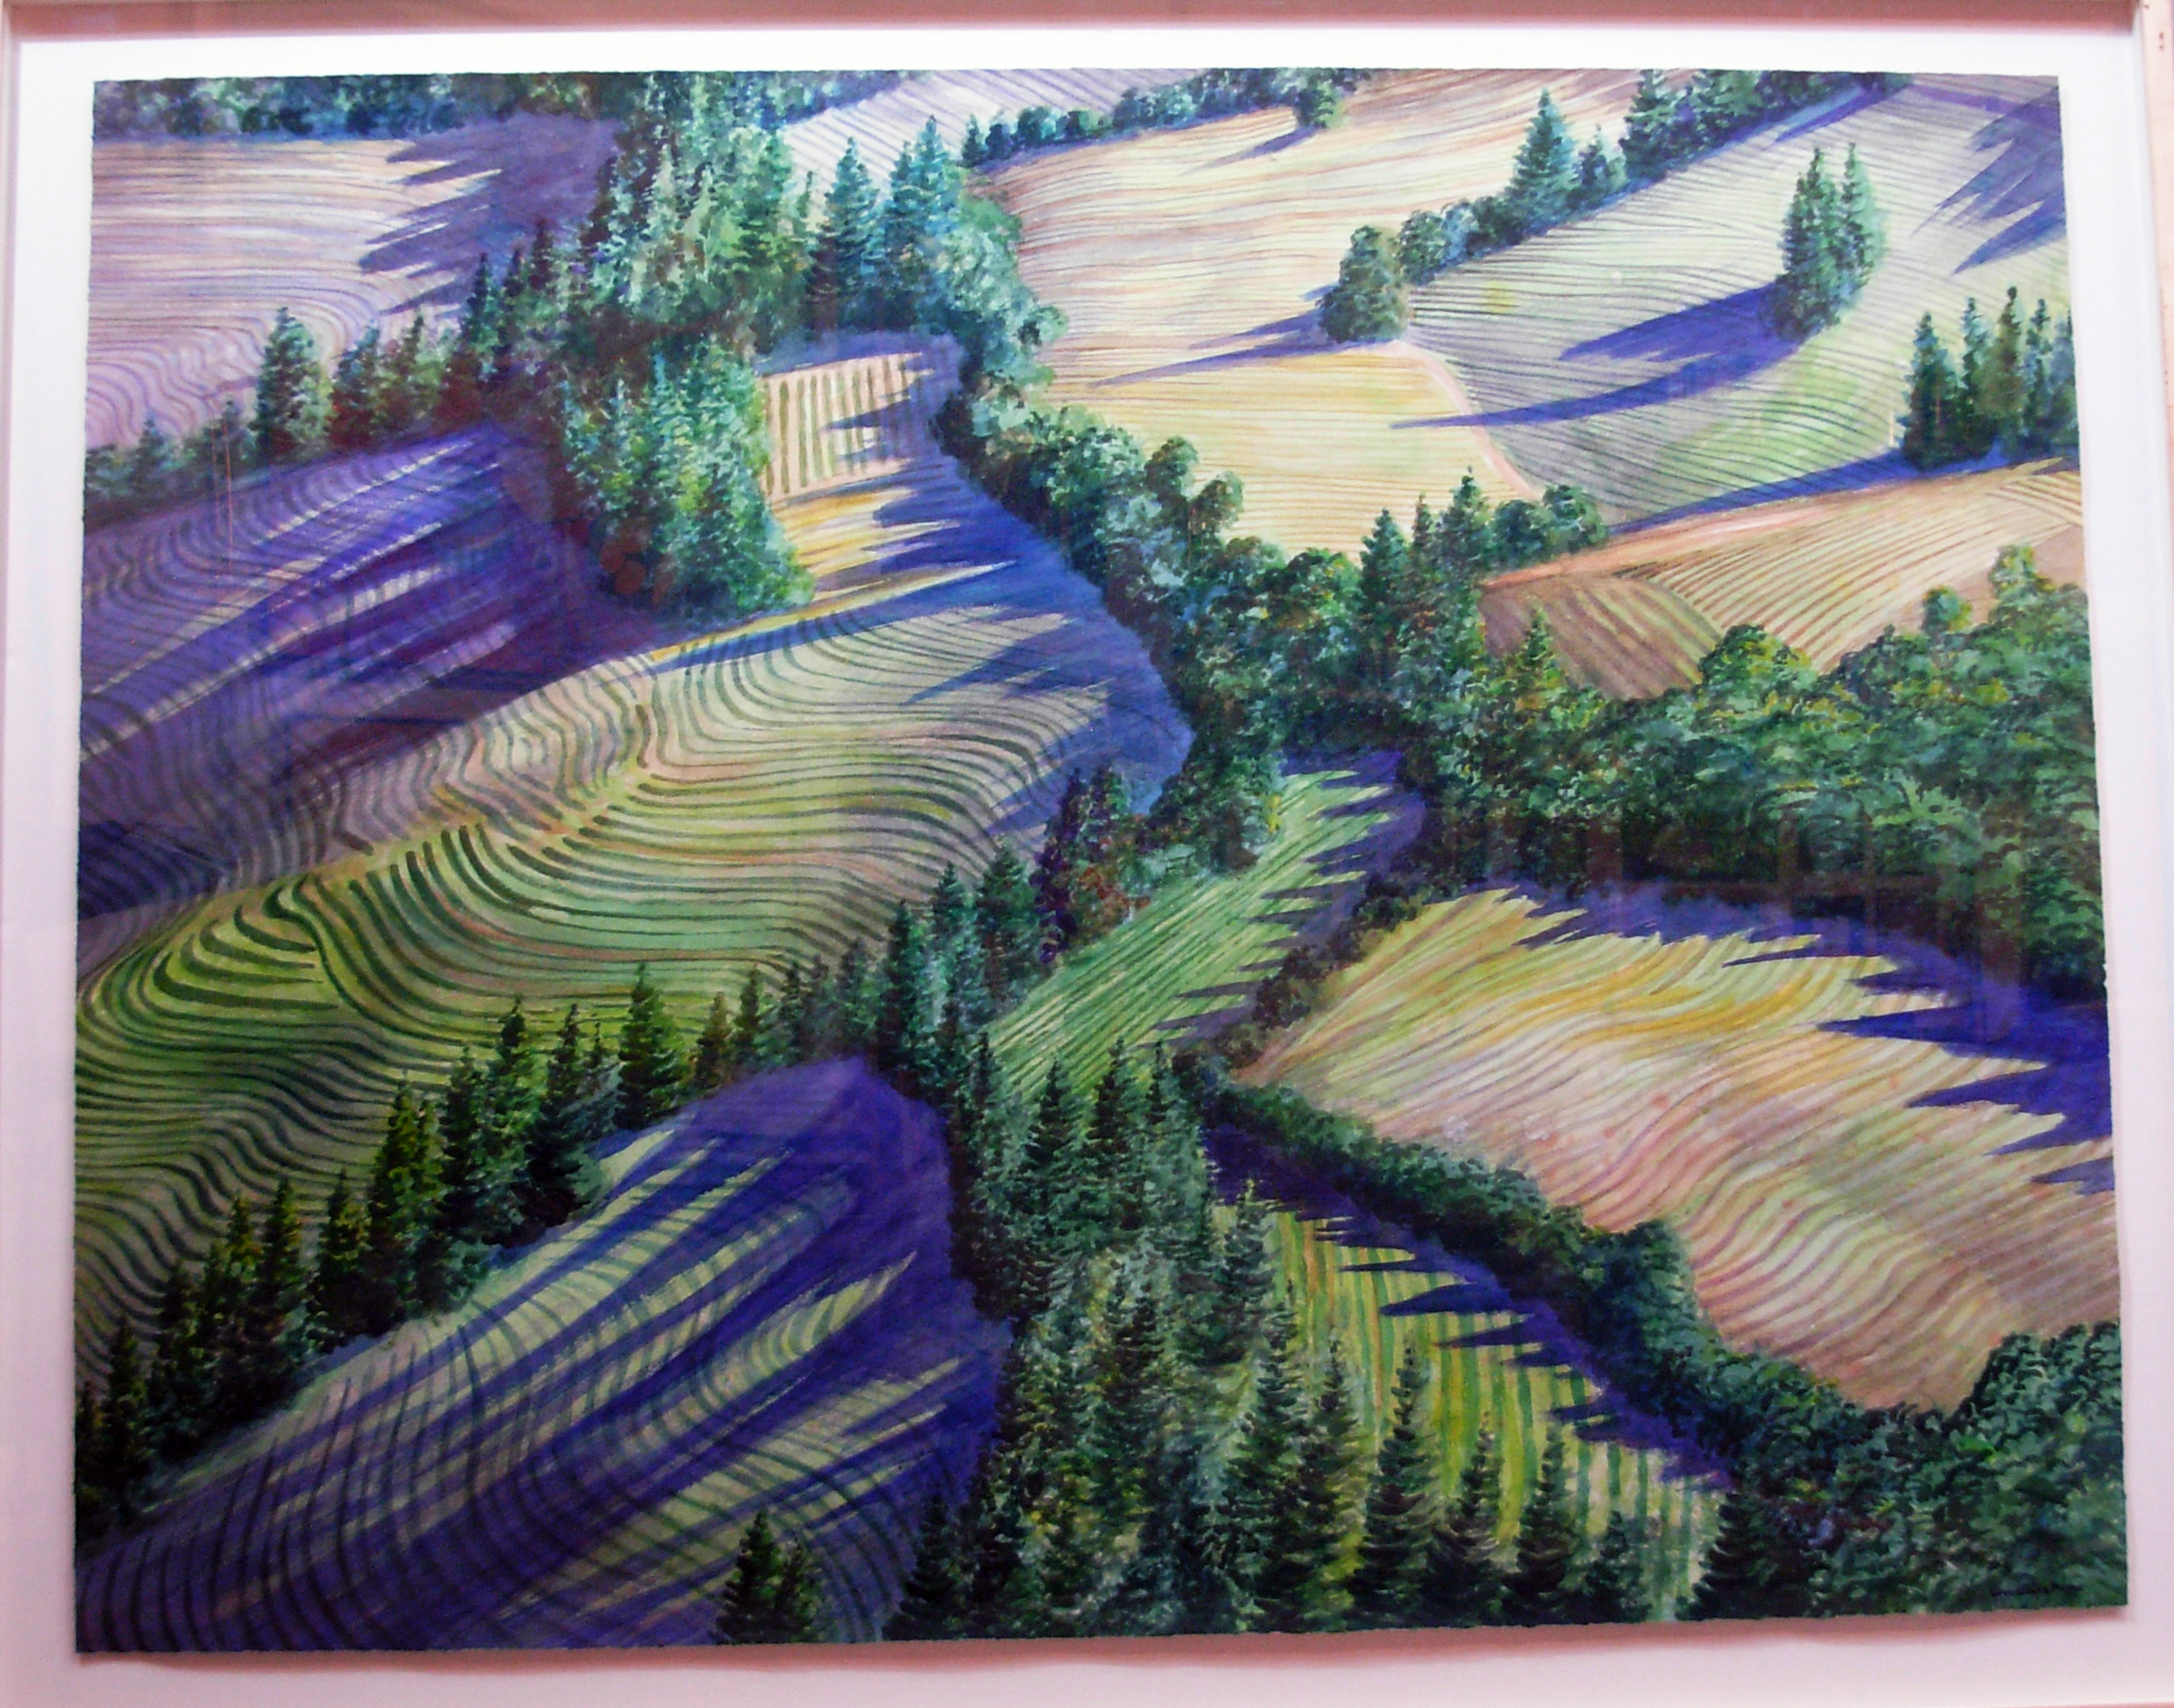 Napa Hills Aerial artwork by Woodward PAYNE - art listed for sale on Artplode